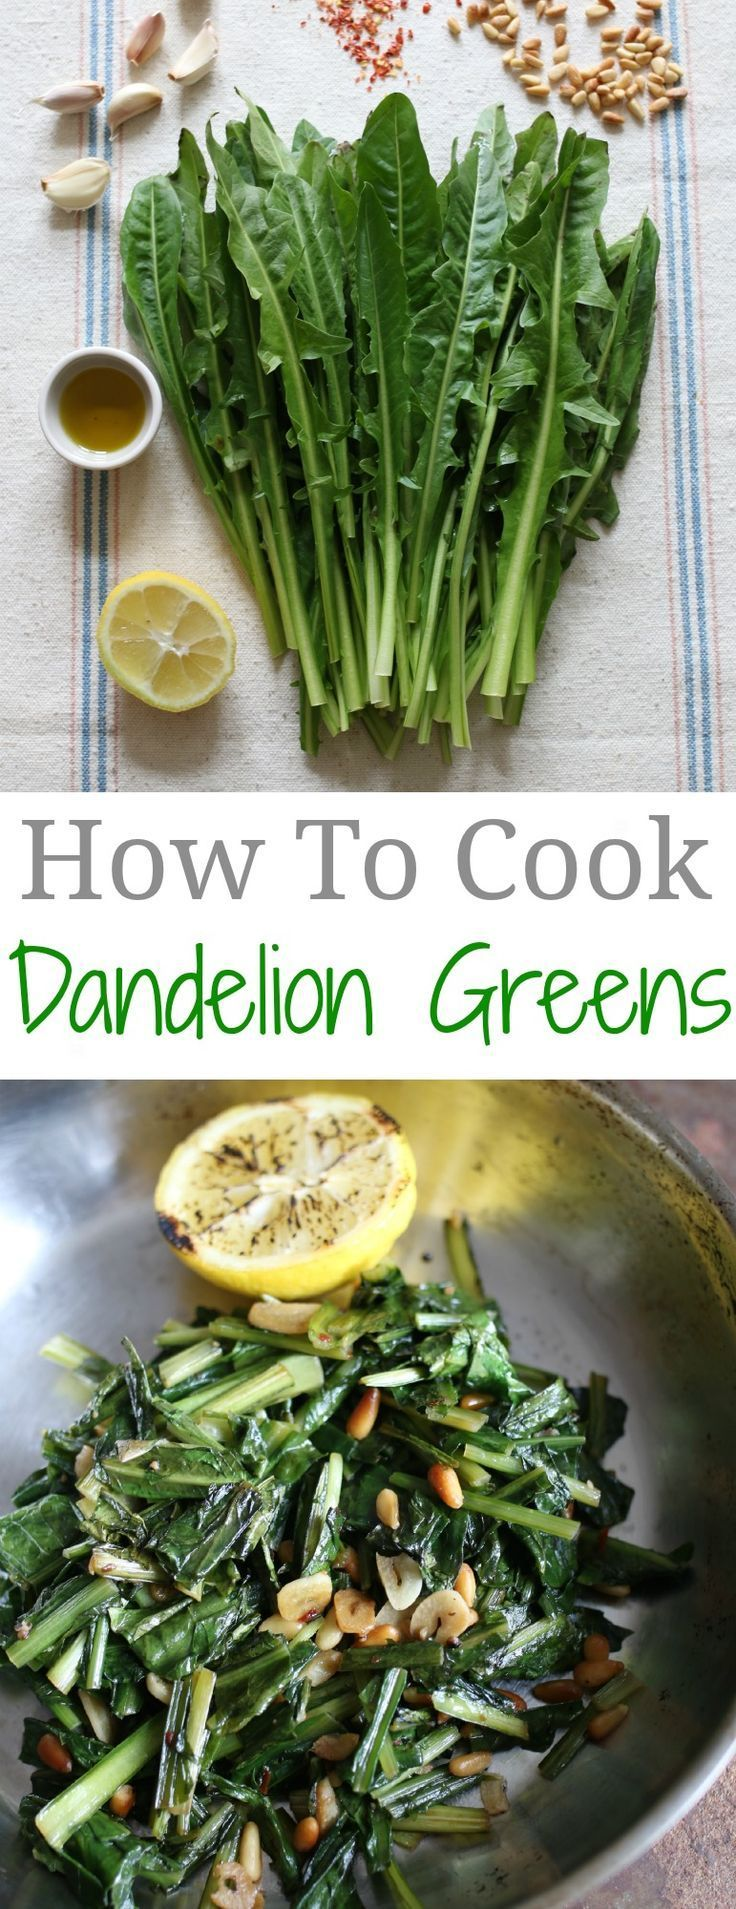 How to Cook Dandelion Greens